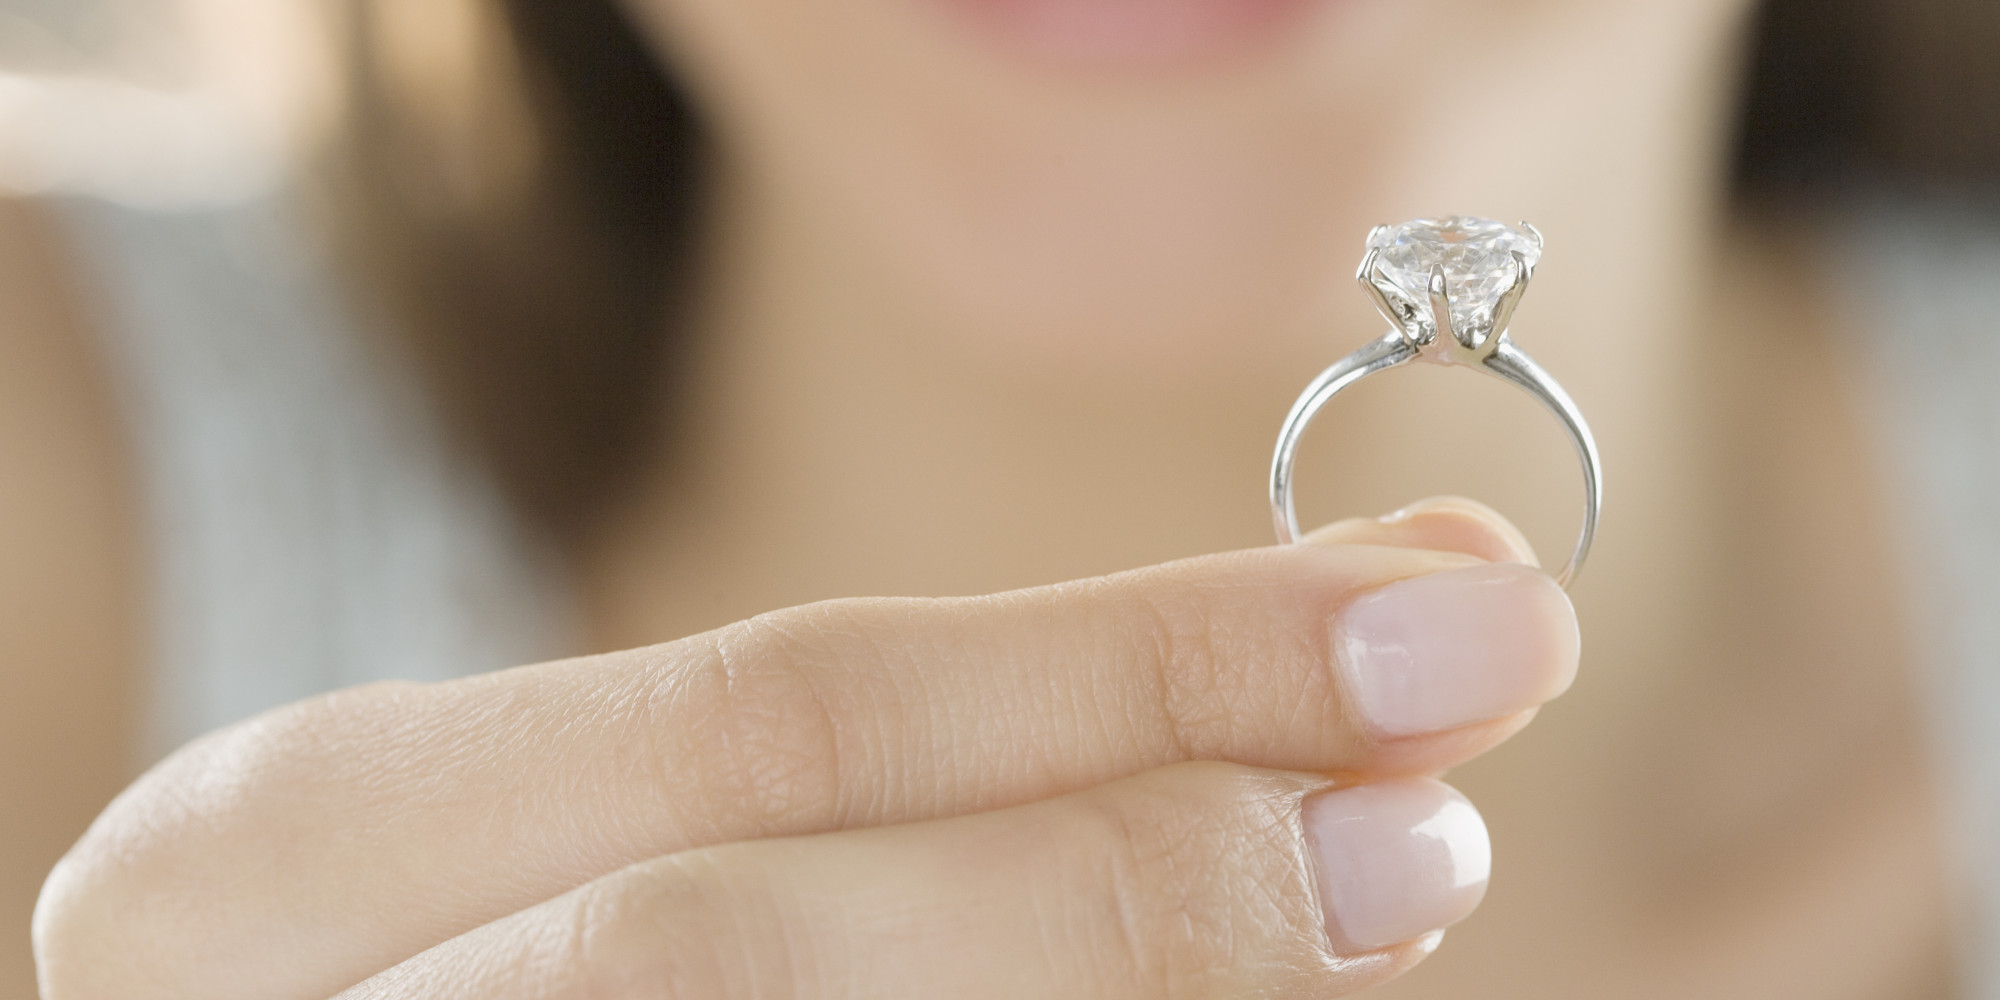 big engagement rings divorce rates n most expensive wedding ring